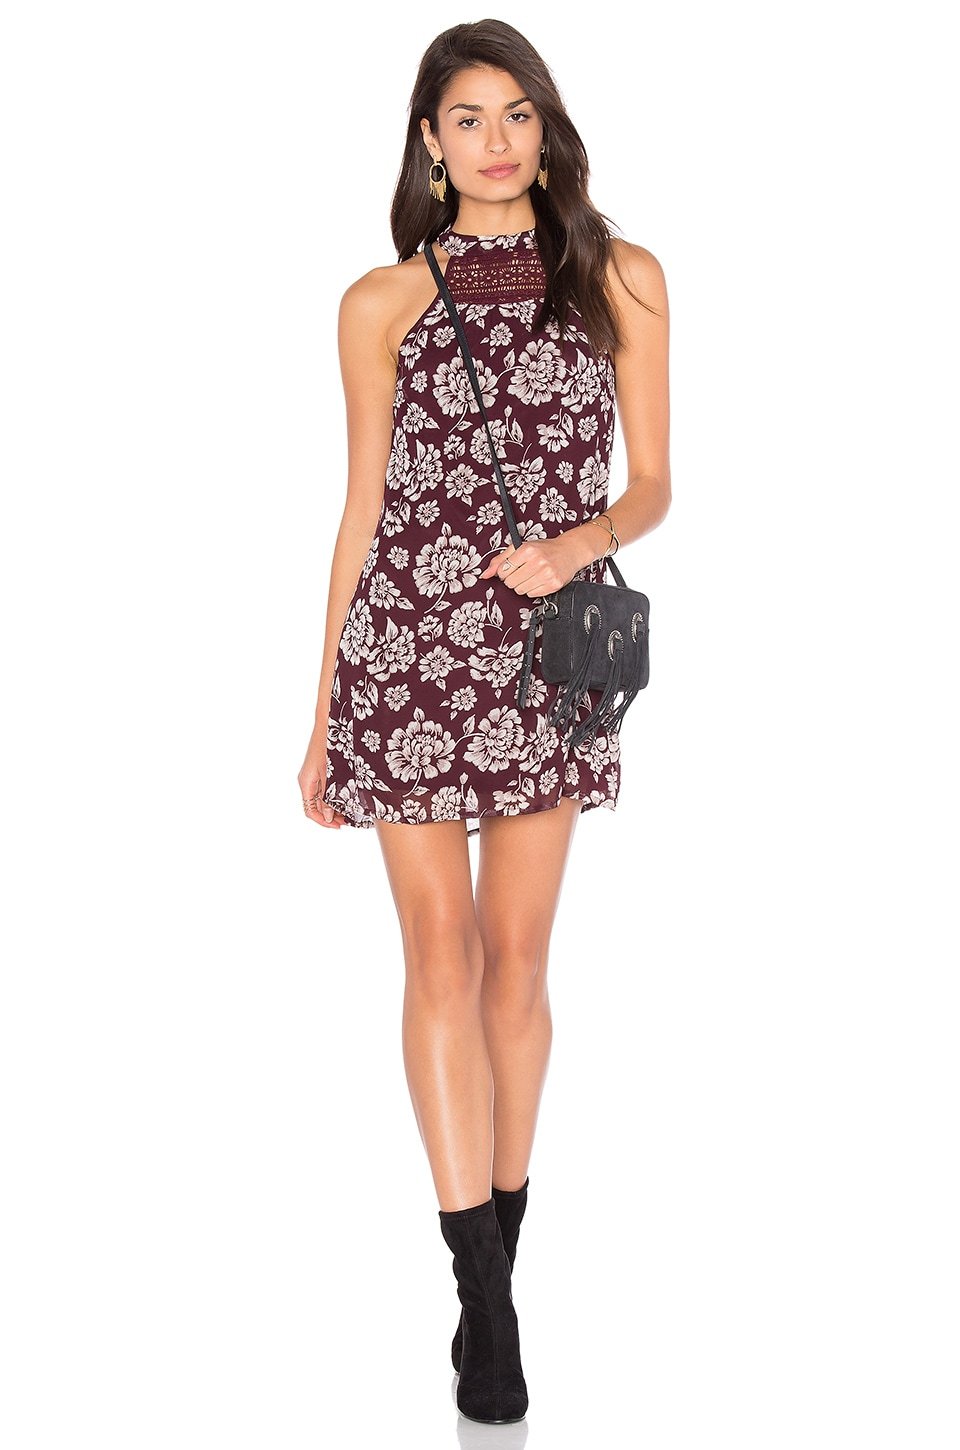 Band of Gypsies Vintage Floral Shift Dress in Burgundy & Ivory